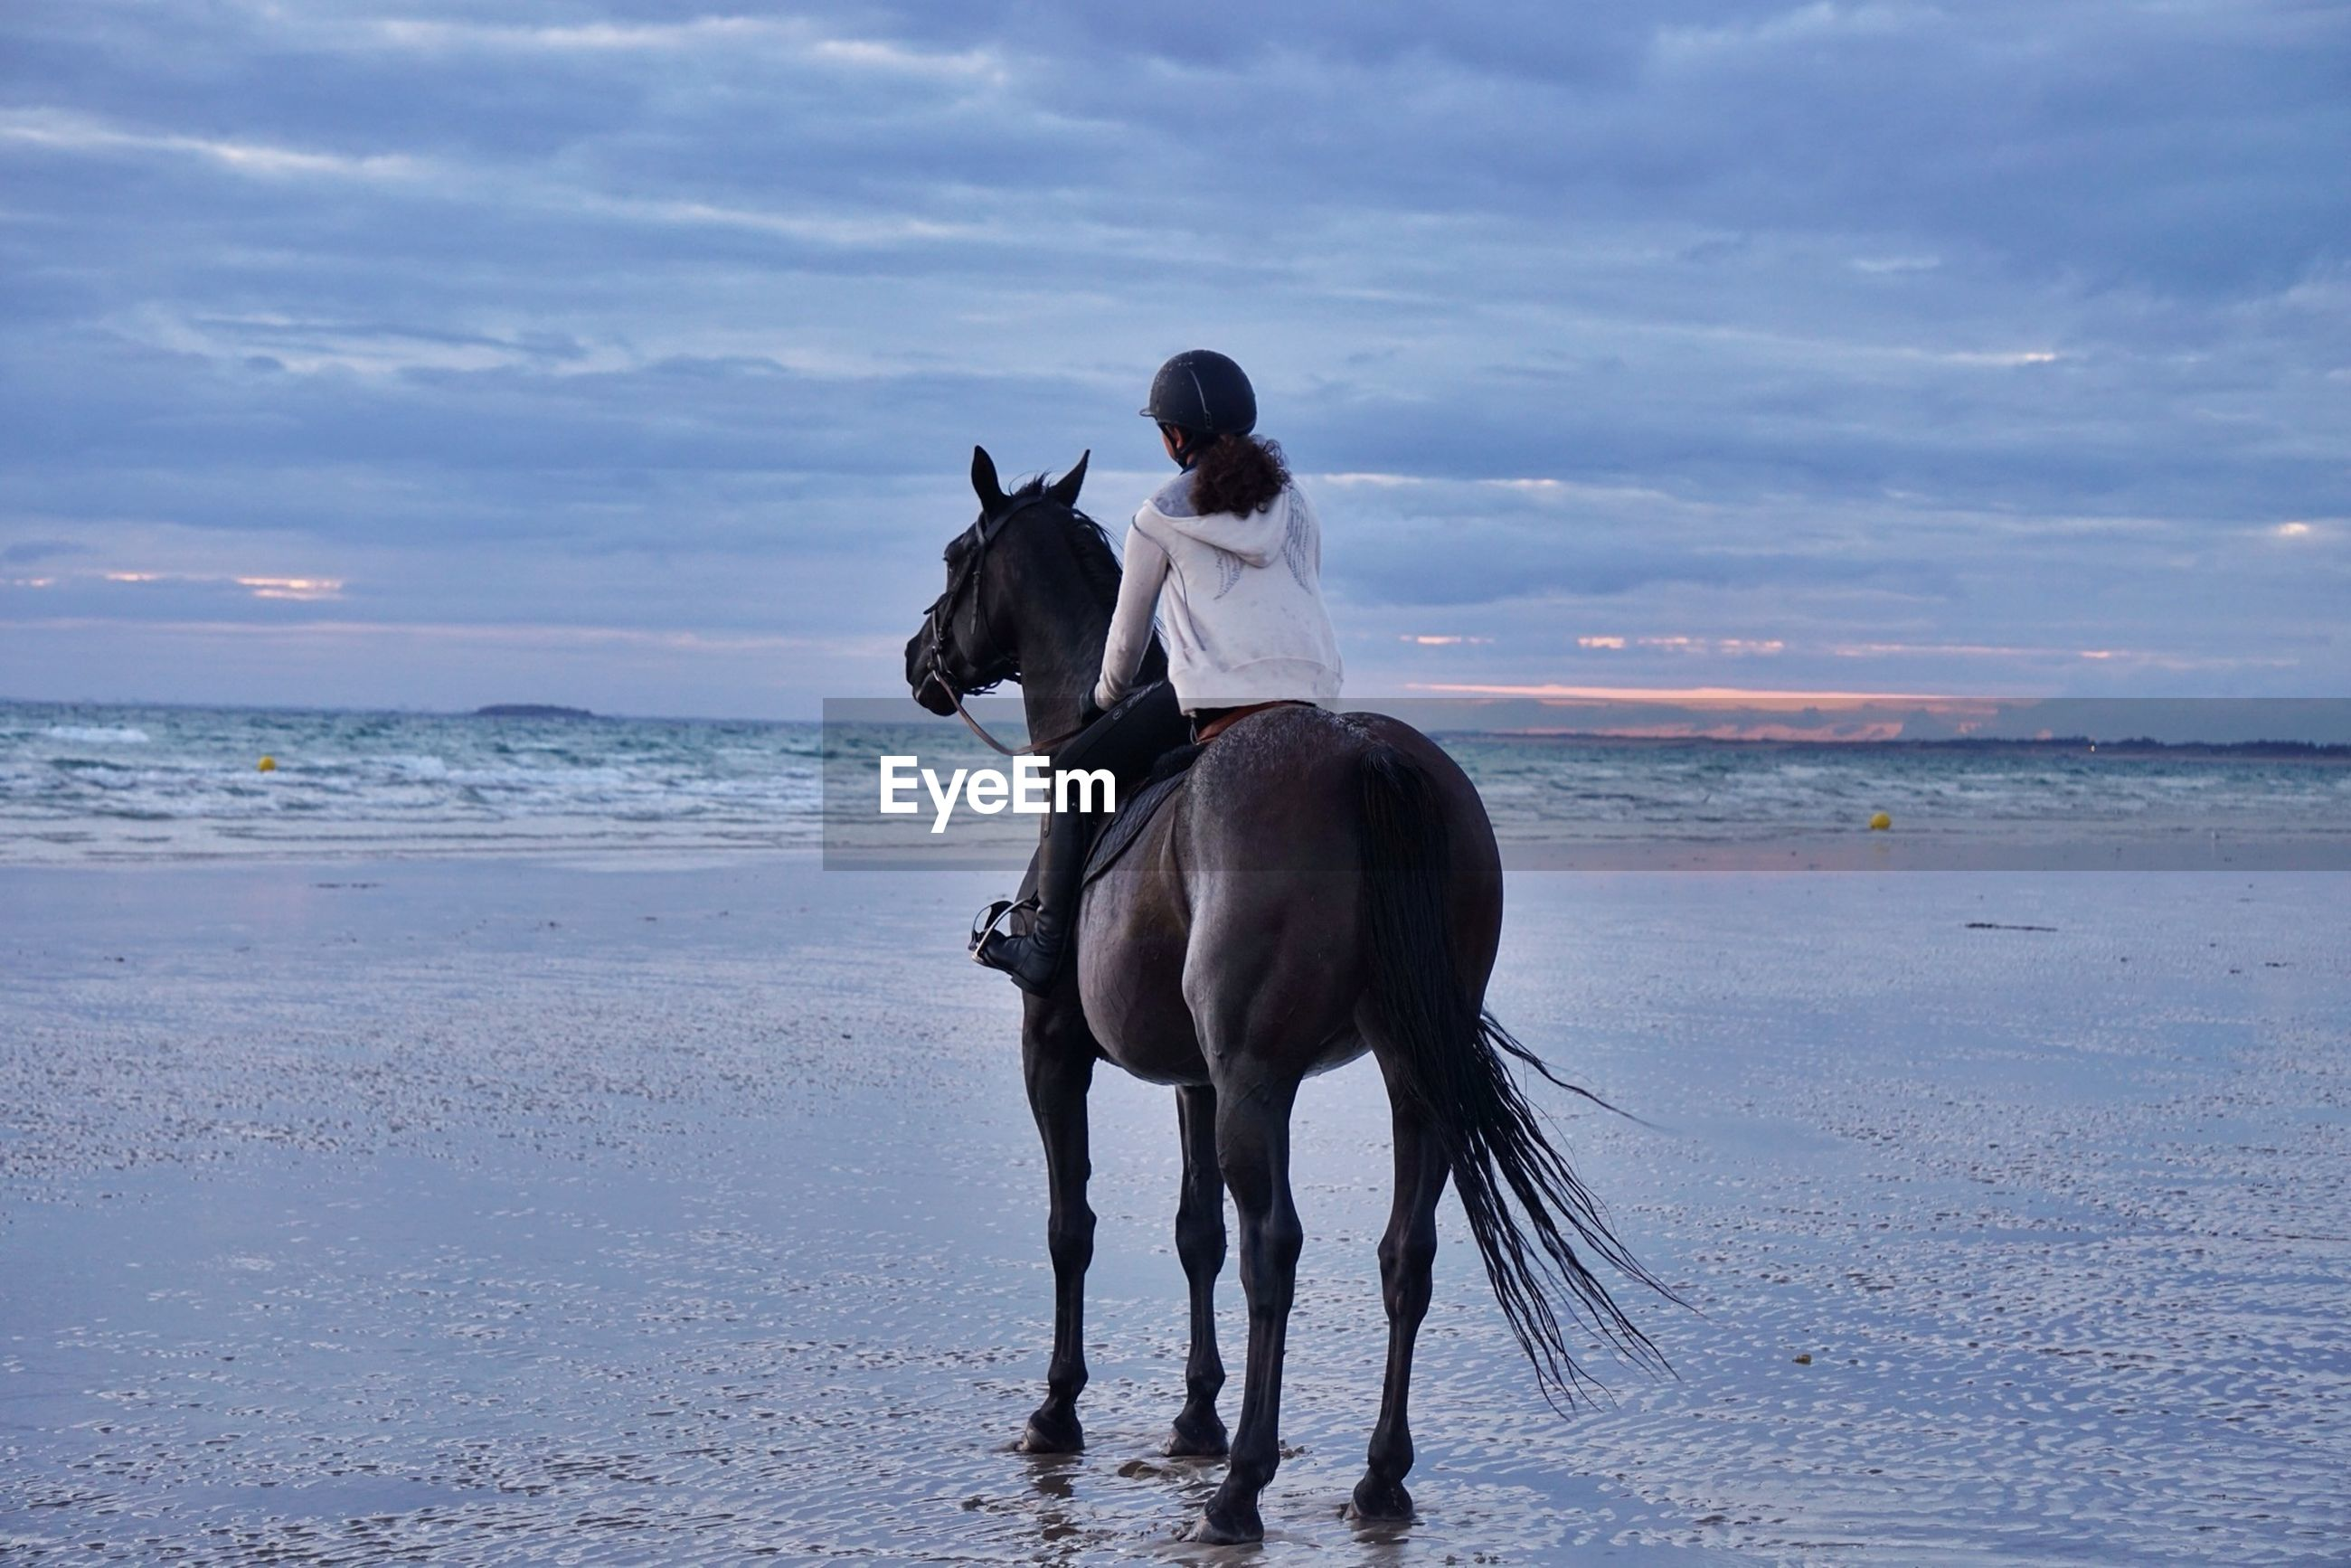 Rear view of horse ride on beach